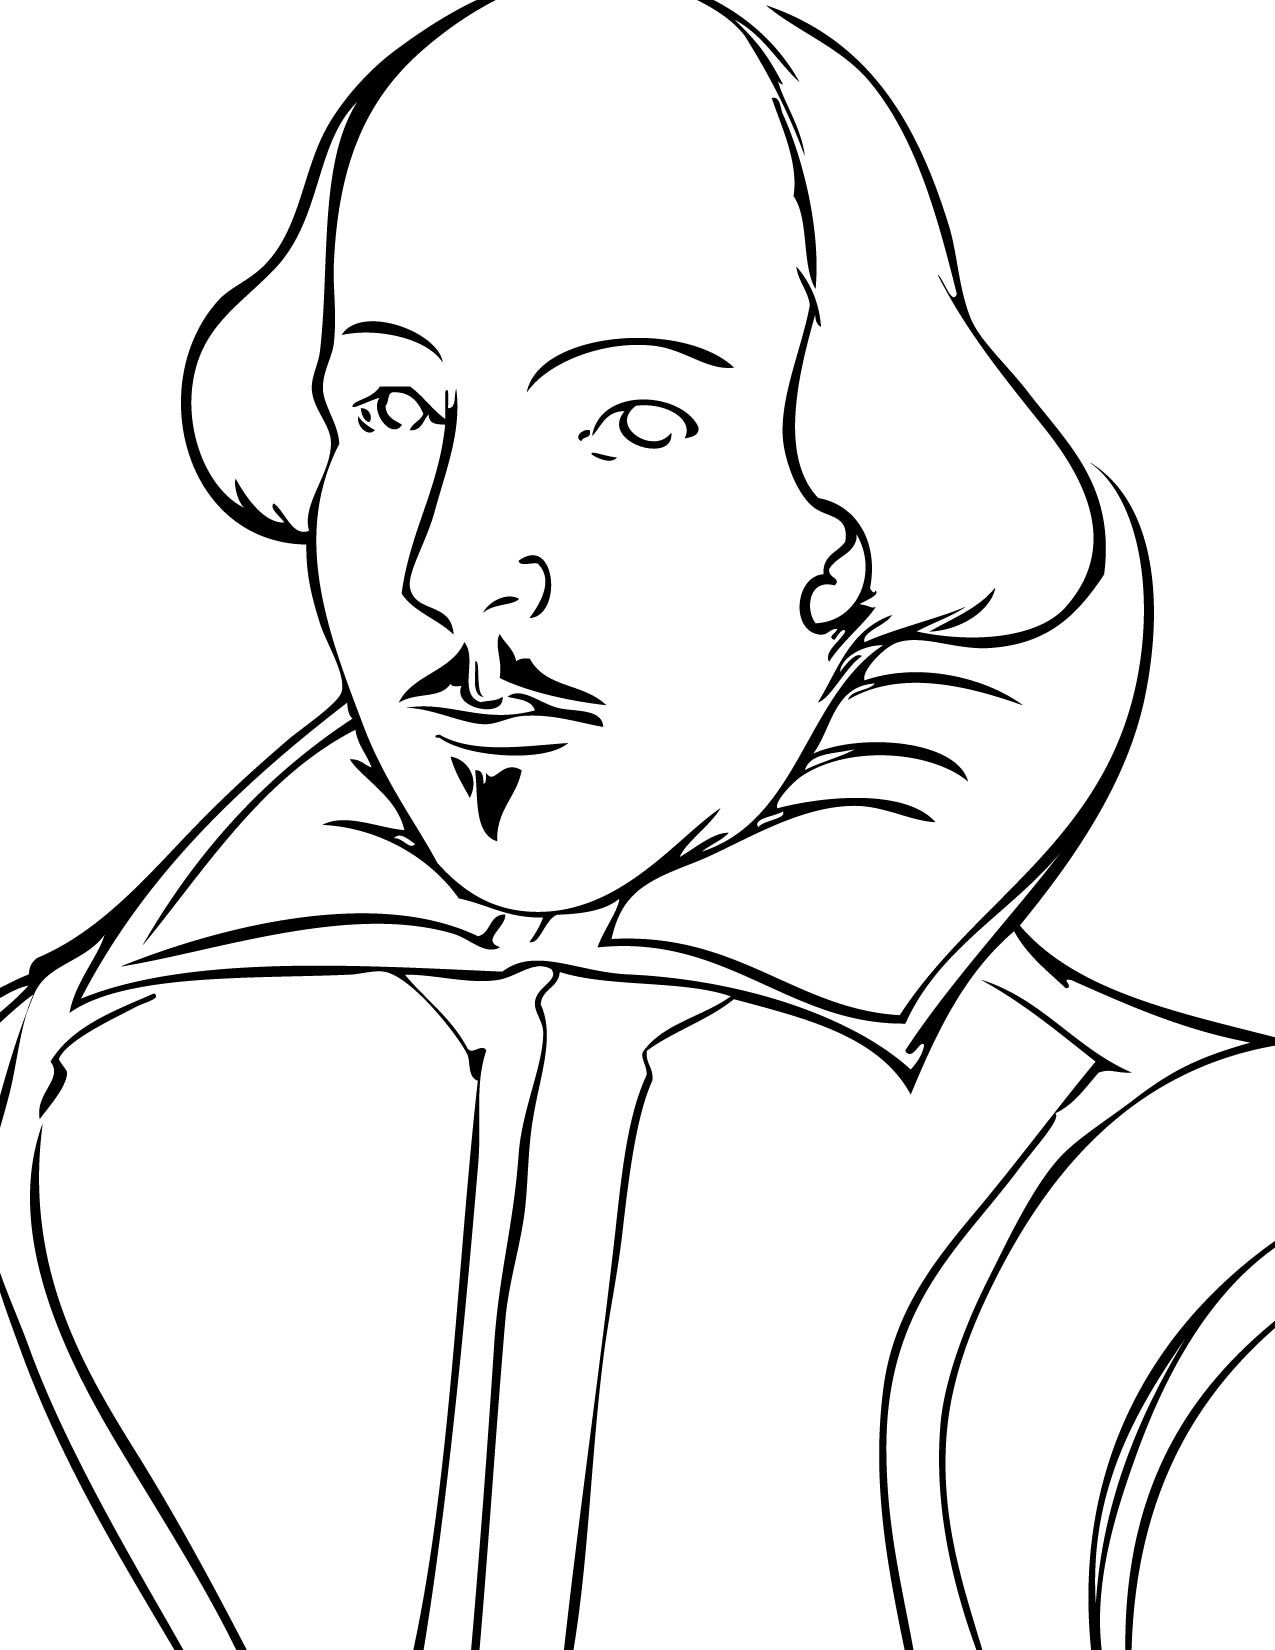 Good Coloring Page Of Shakespeare S Face If You Have To